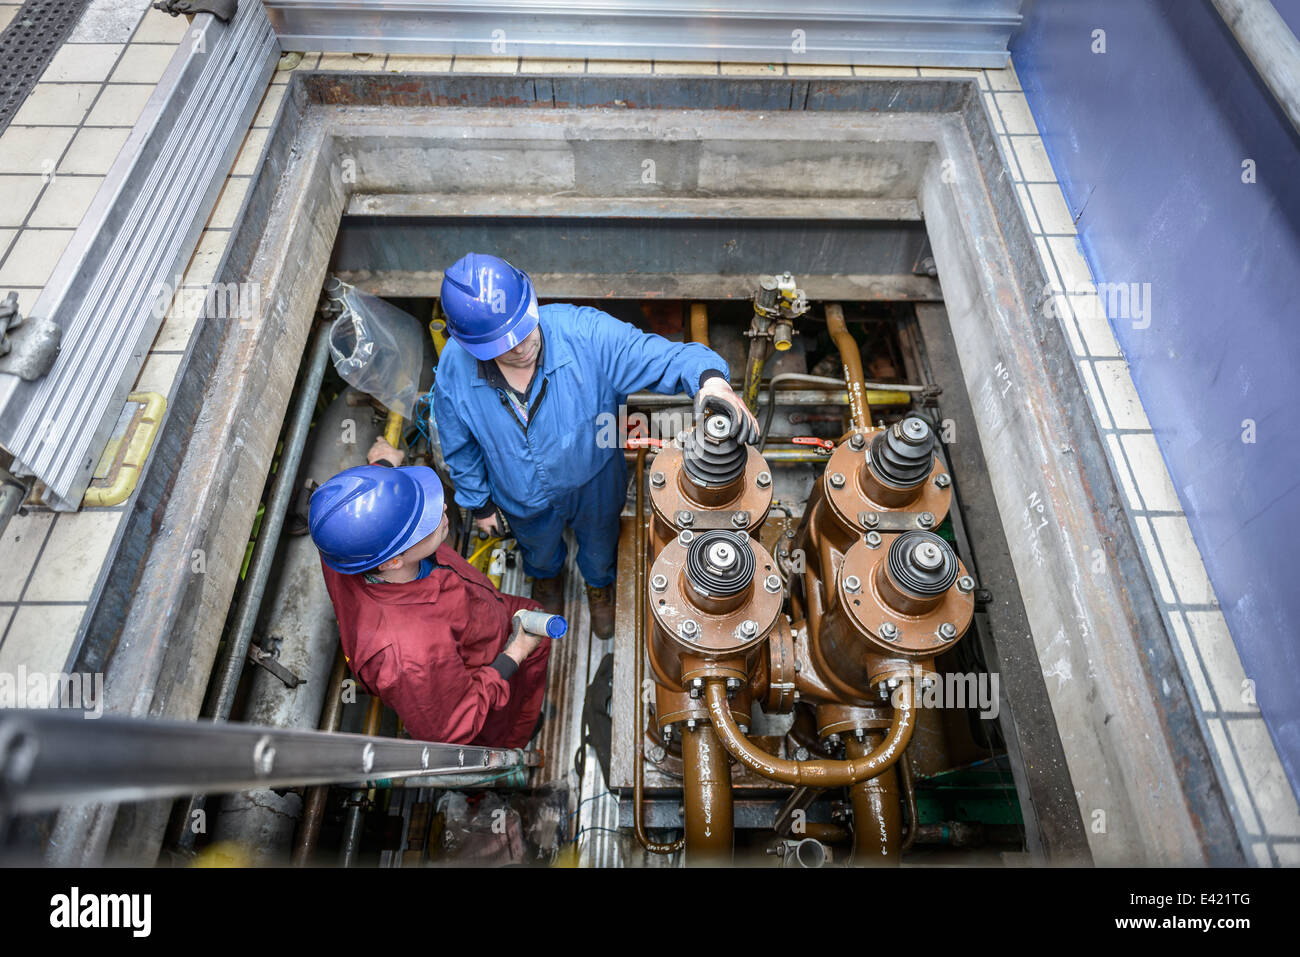 Engineers inspecting electrical unit during power station outage, elevated view - Stock Image